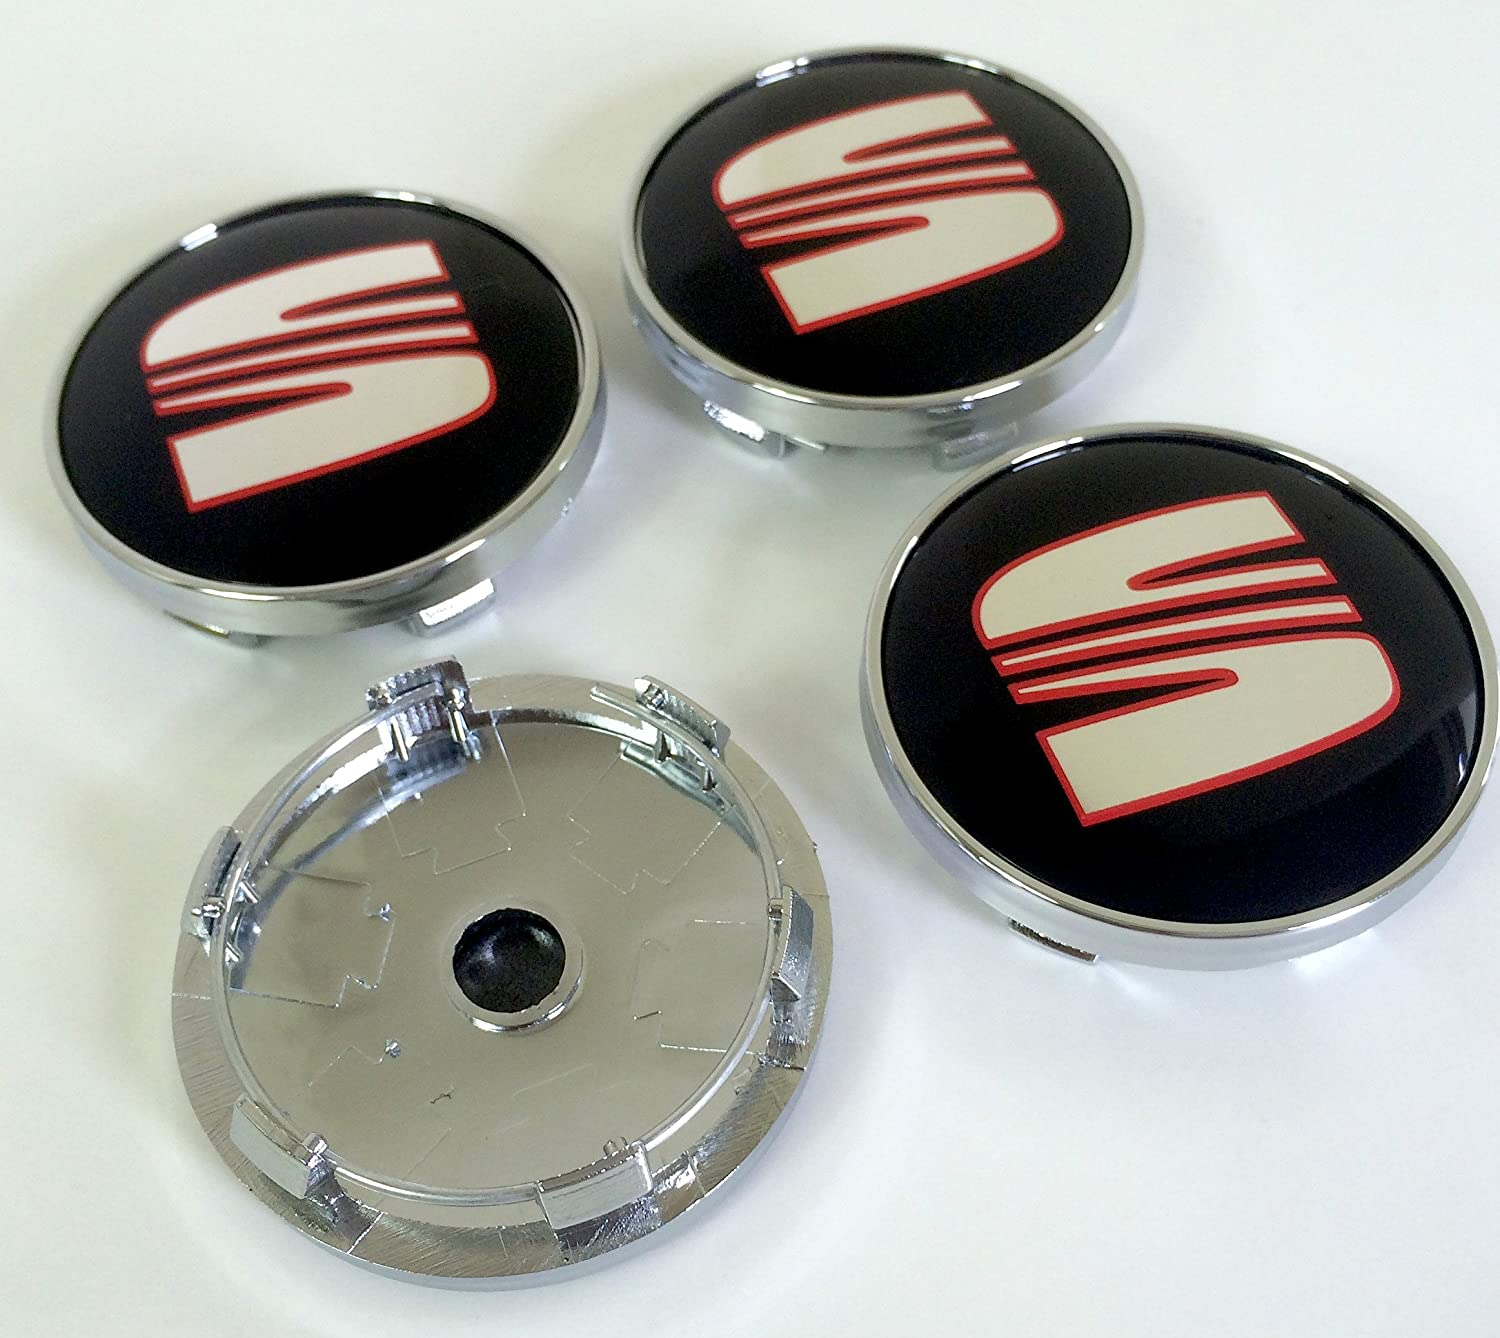 Set of Four Alloy Wheels Centre Hub Caps 60 mm Red Black Logo Chrome Cover Seat Set de cuatro Llantas Center Tapacubos nabenabdeckung Buje Tapa Buje tapas ...